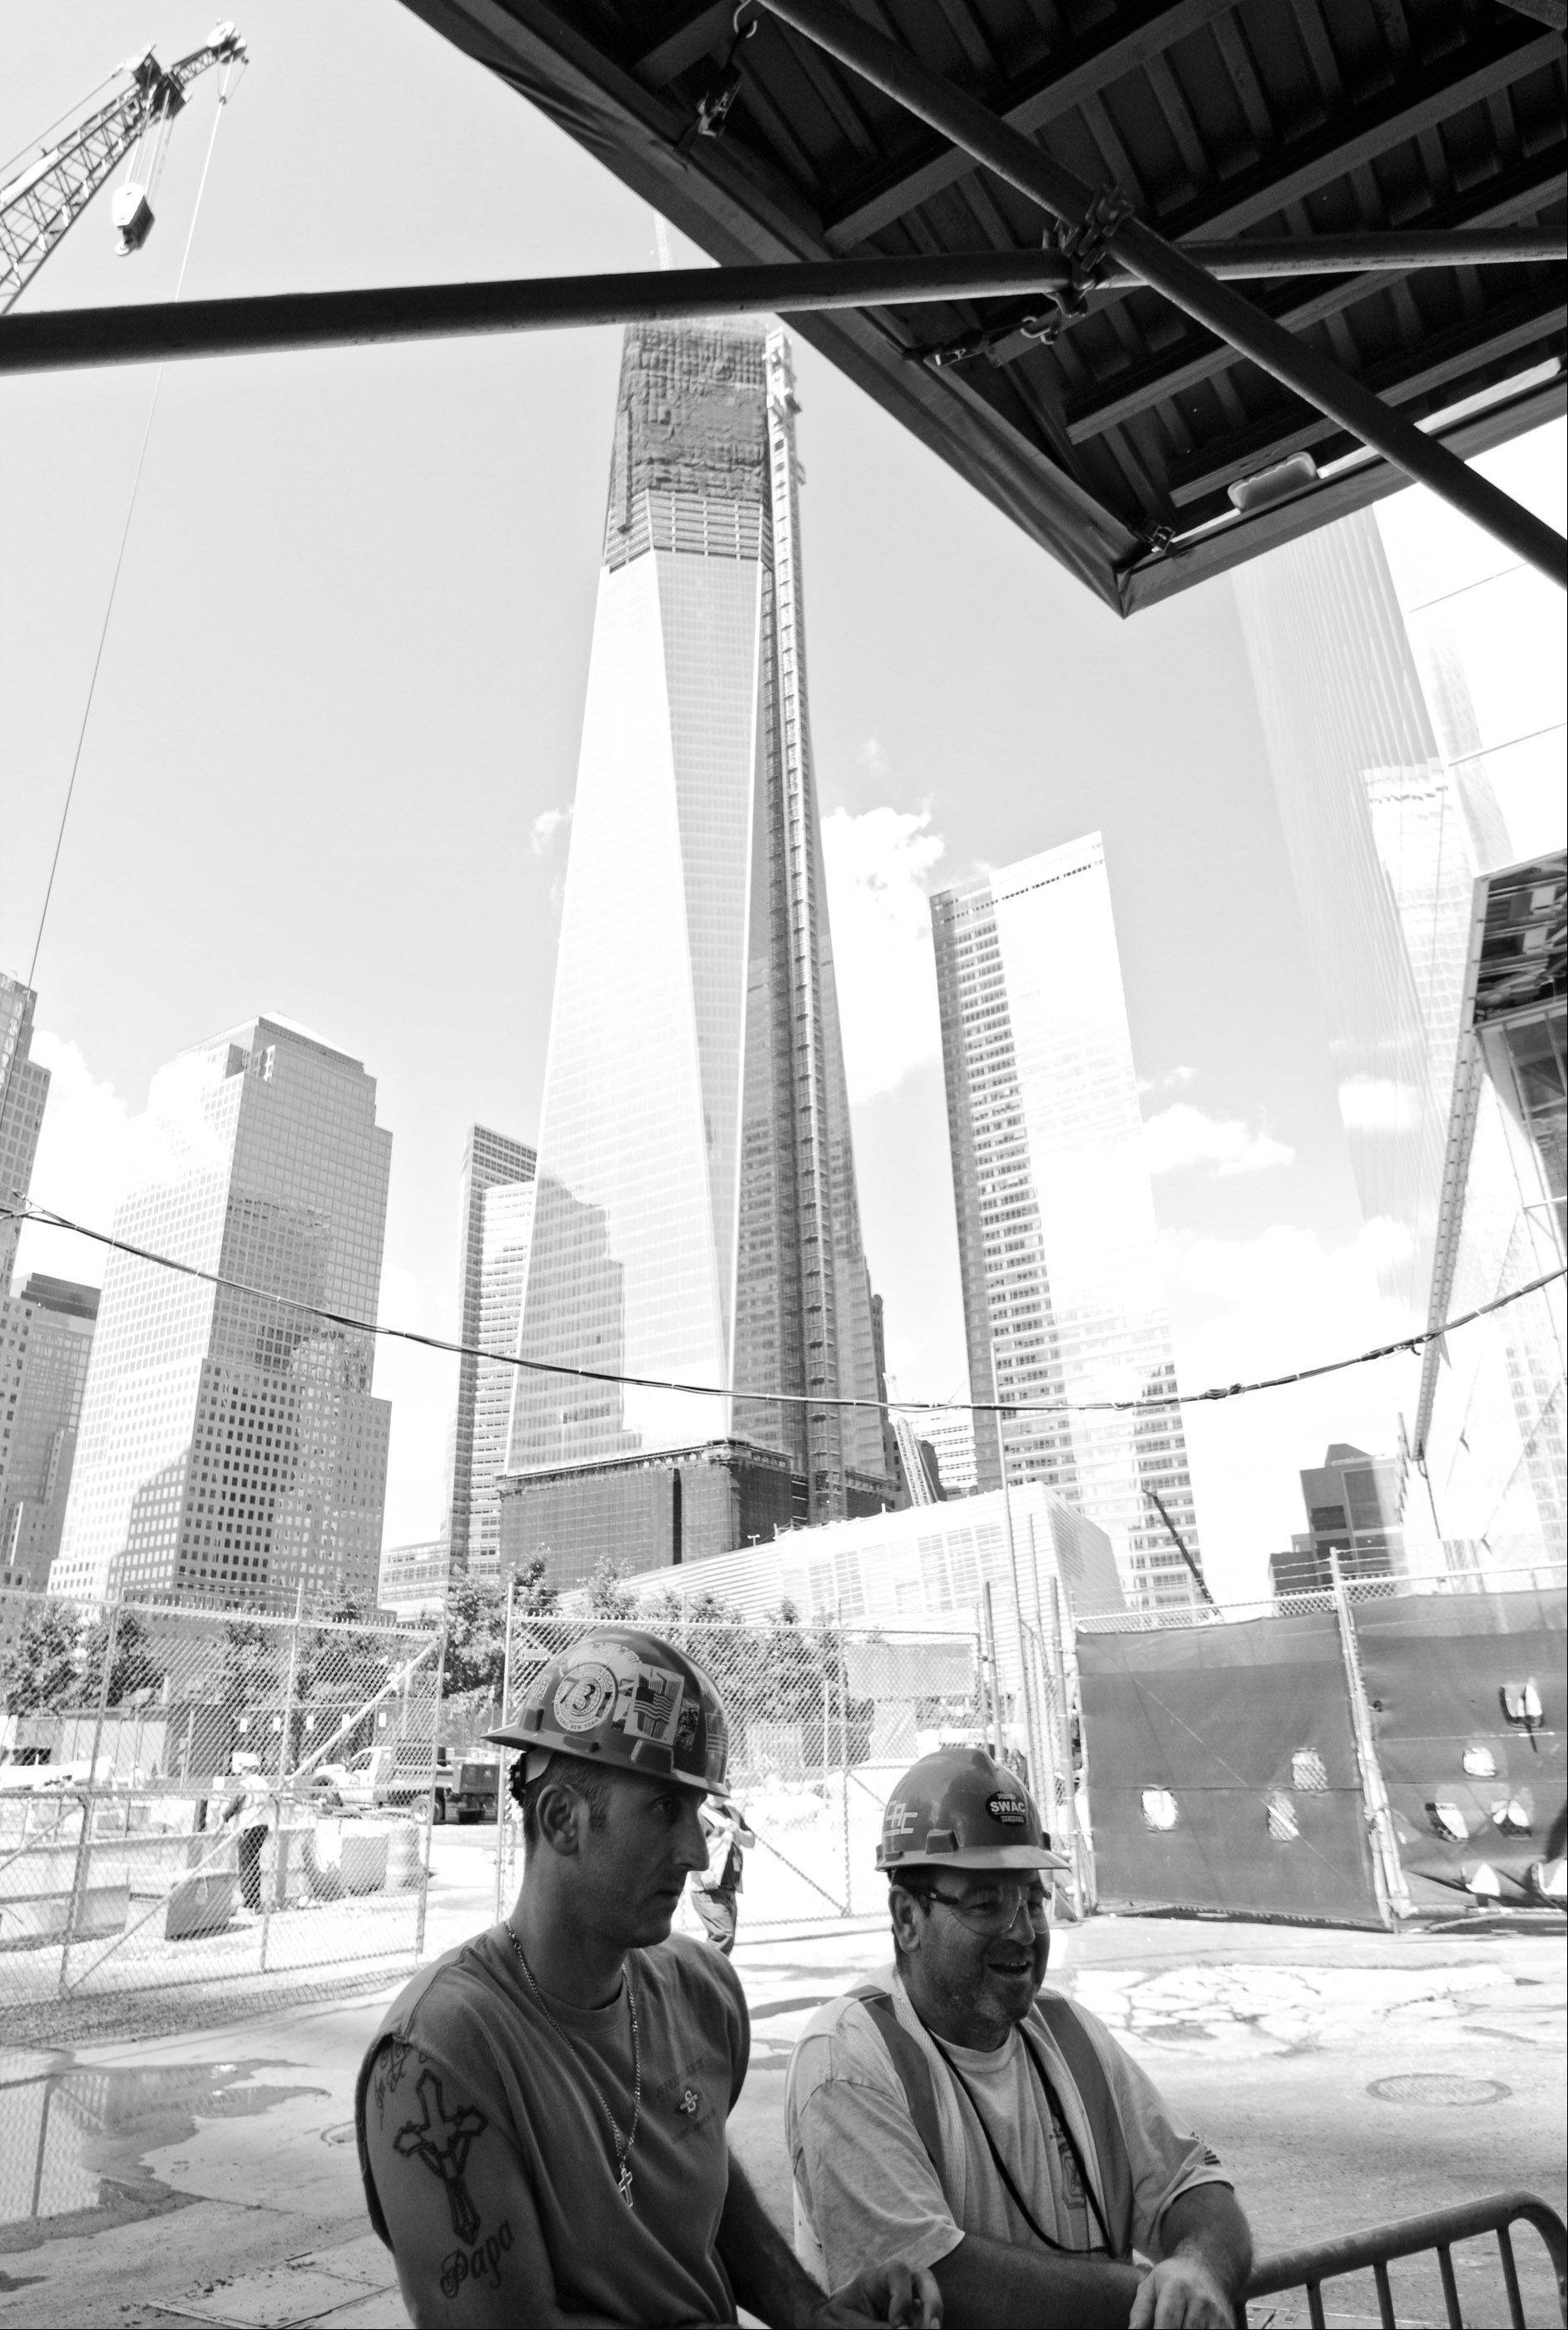 Two men at work building the new World Trade buildings in Manhattan, take a break near visitors of the September 11, 2001 memorials bearby. Eleven years after the fall of the twin towers, the real story is not necessarily the rebuilding of the physical towers, but the ability for Americans to continue their lives and appreciate New York City as the rich cultural center that it is.